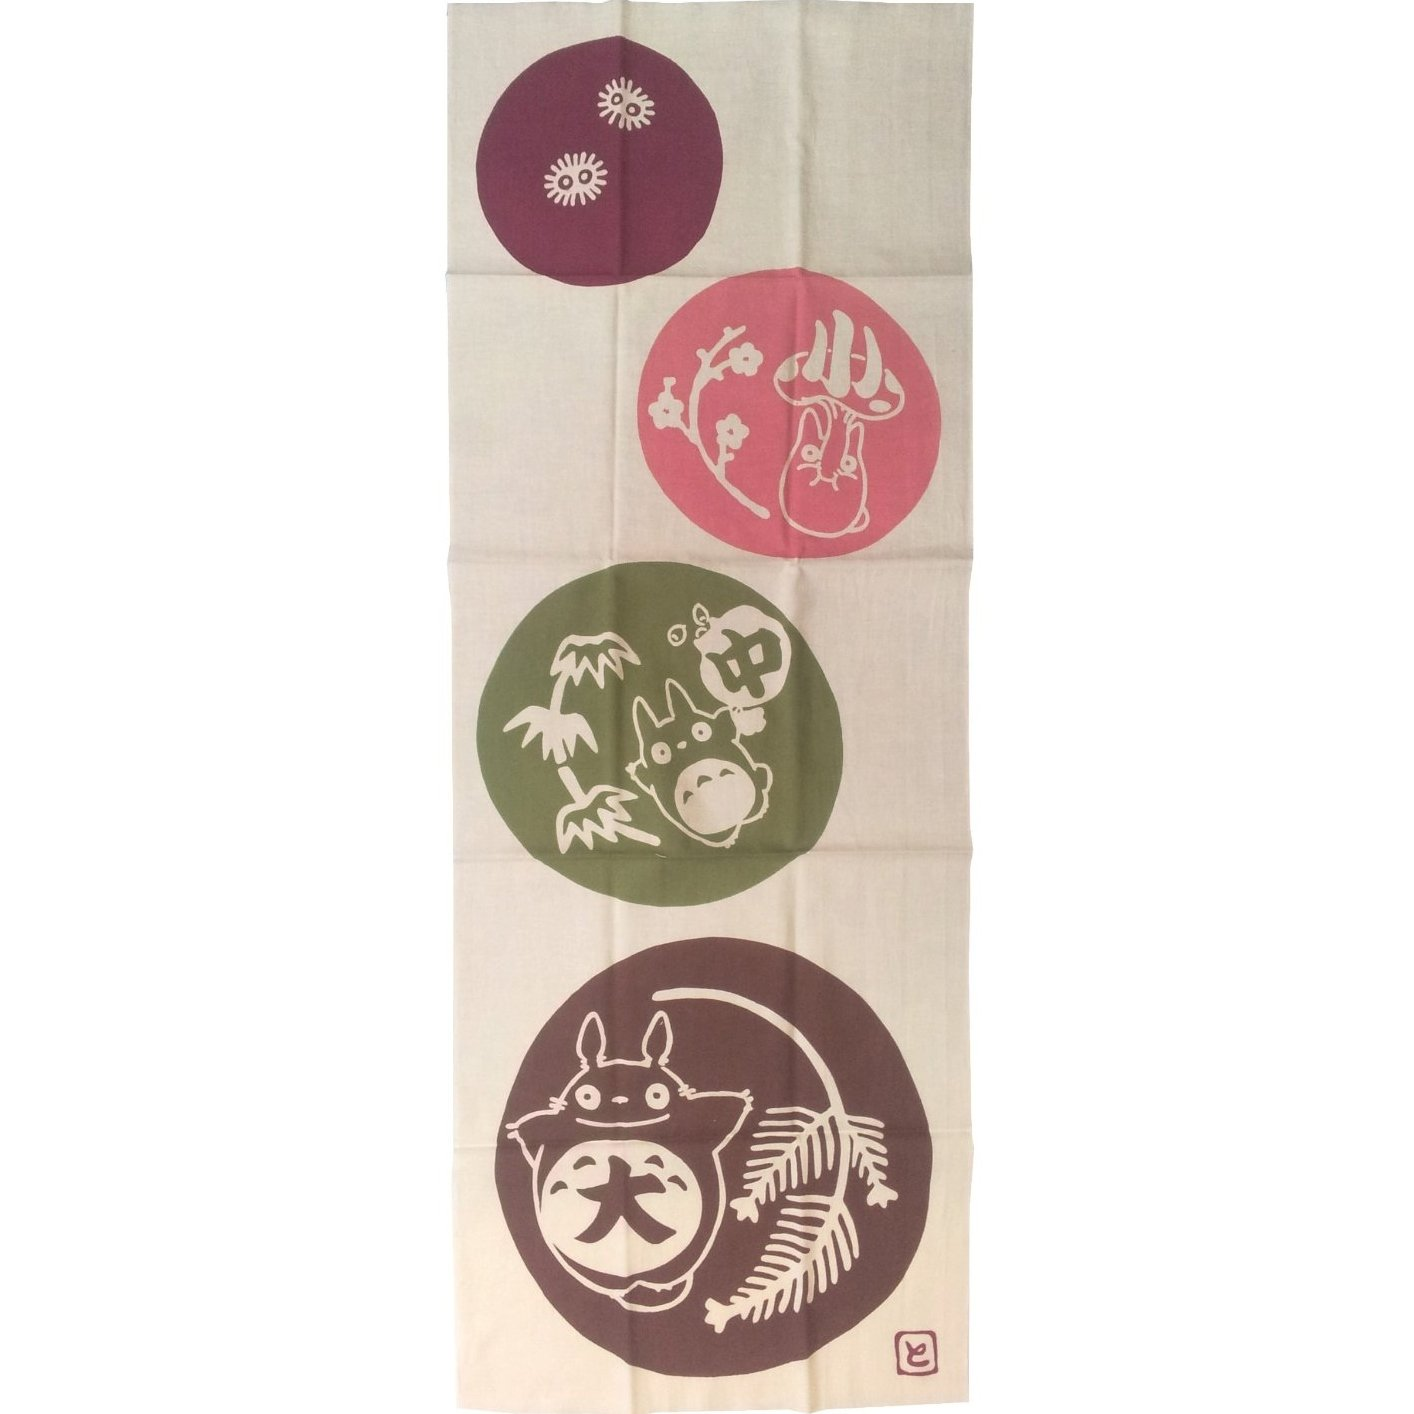 Towel / Tenugui - 33x90cm - Dyed - Shochikubai - Totoro - made Japan - no production (new)